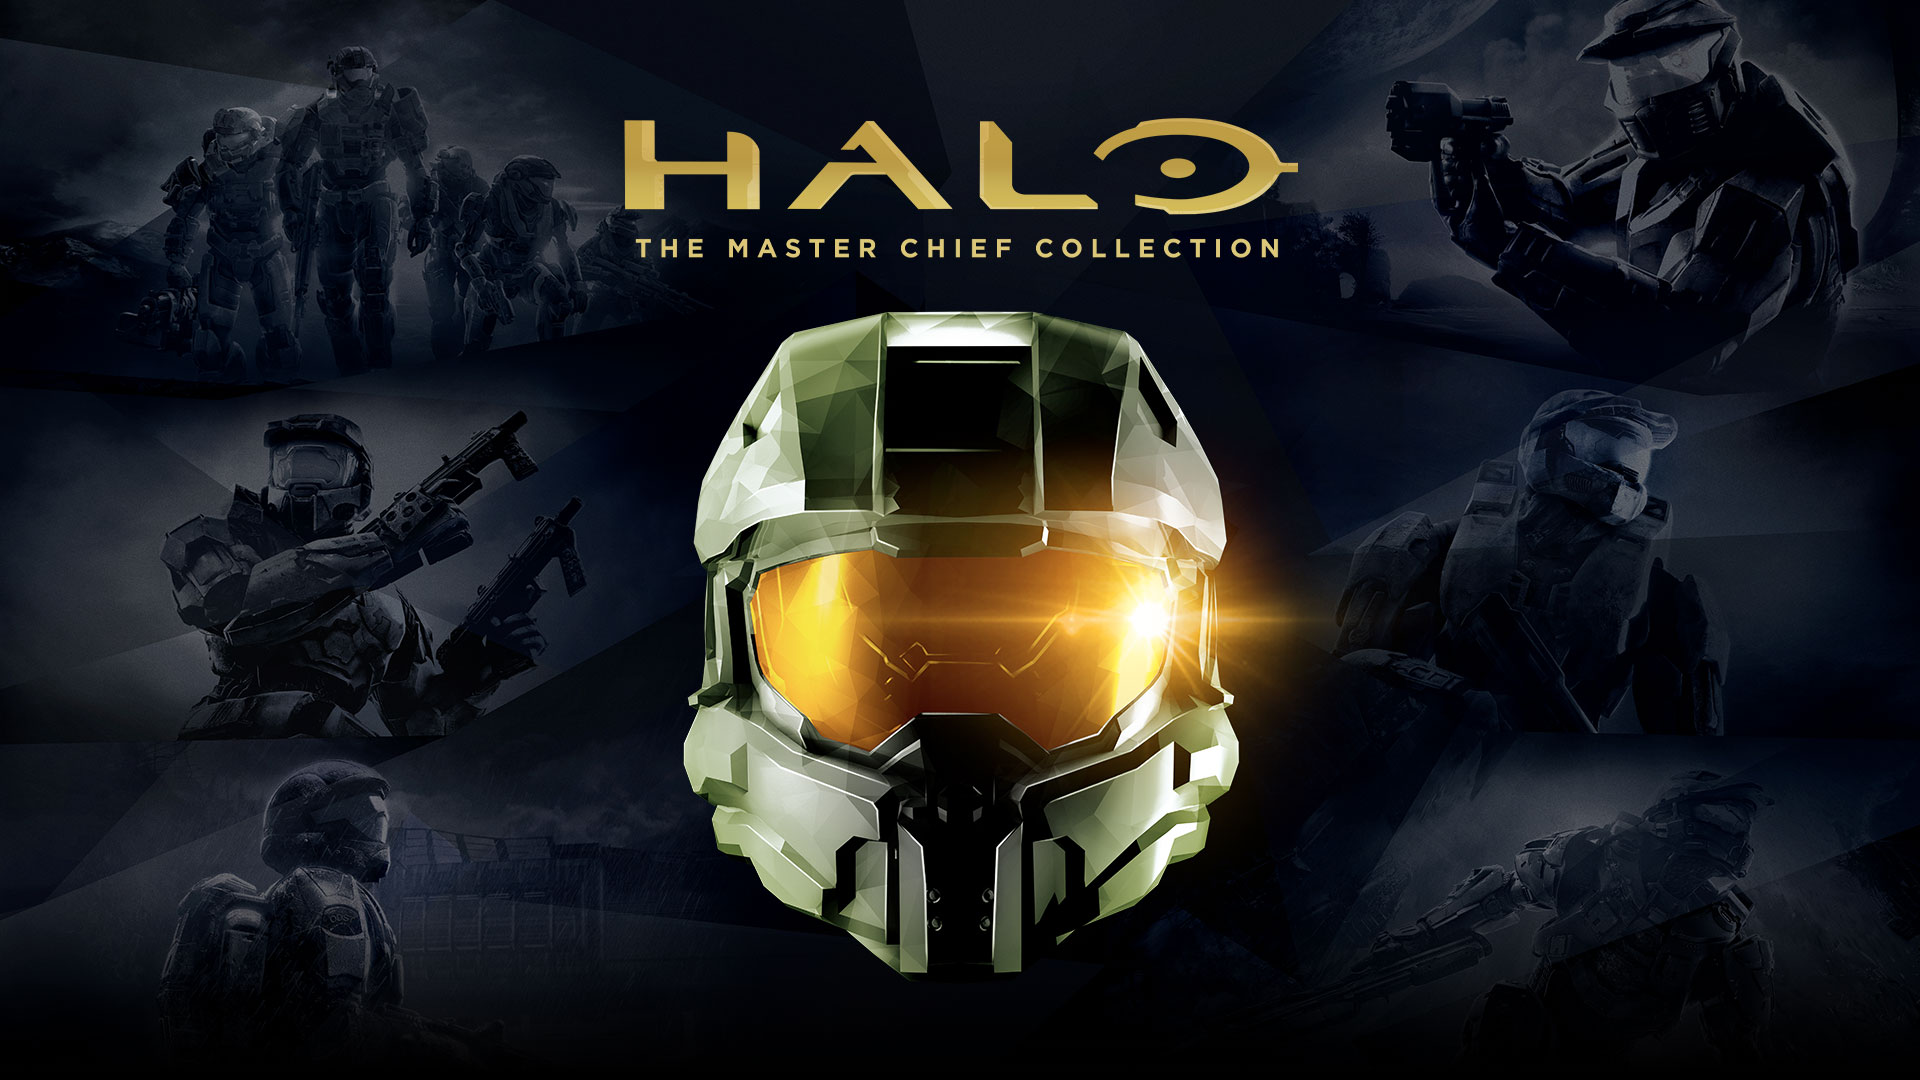 Halo The Master Chief Collection,Master Chief 頭盔與 Halo 透明背景的包裝圖